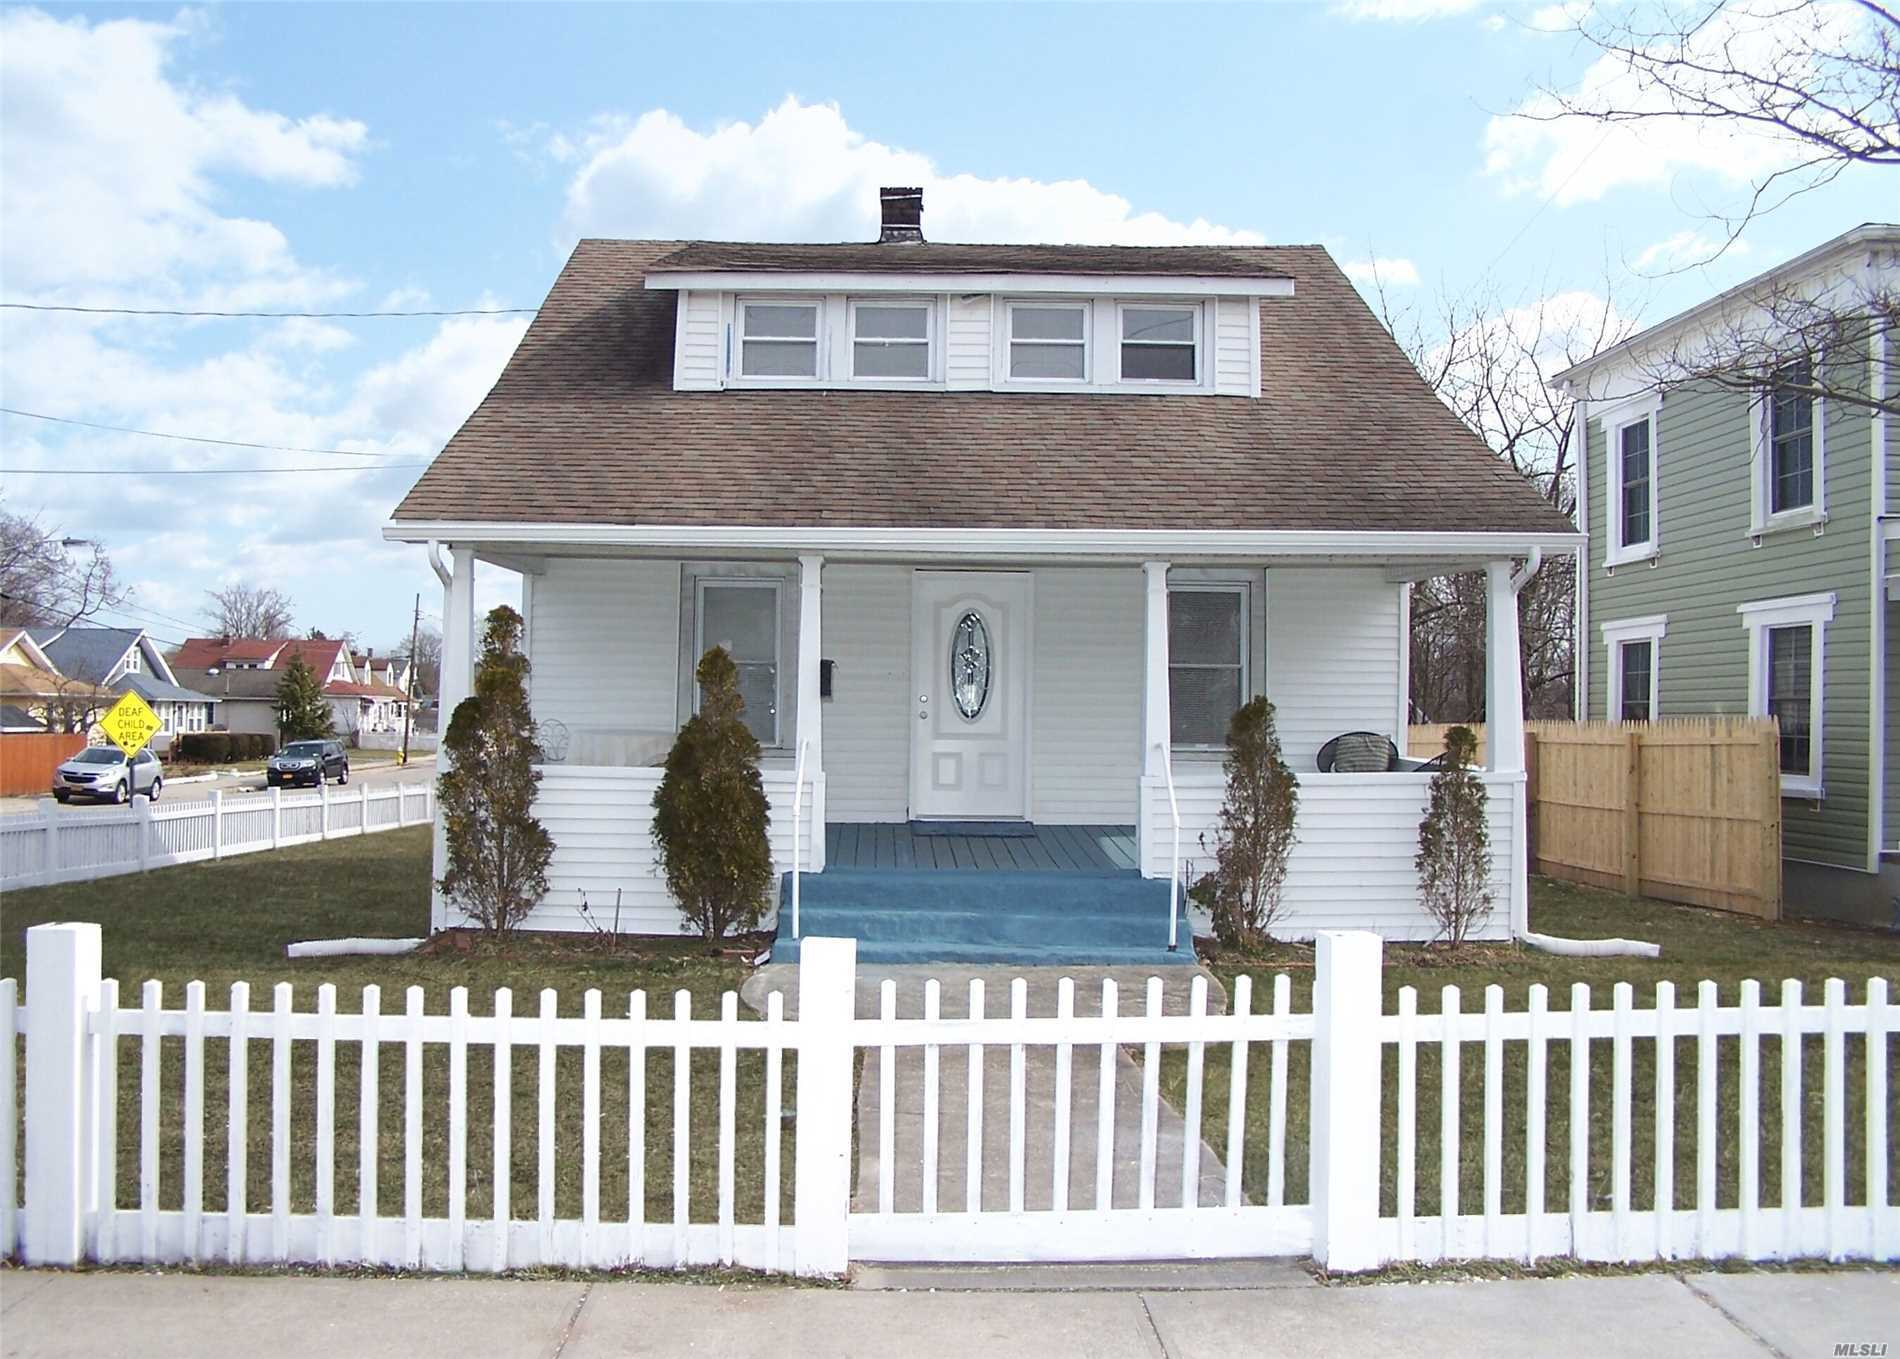 Location .. Location...Fantastic Cape In The Heart Of Patchogue Totally Redone Feature Lv, Brand New Kitchen With Top Of The Line Appliances Master Bed In The First Floor, Total 4 Bed 2 Full Bath, Outside Full Basement/P/M Schools /No Village Taxes, Walk To A Beautiful Town & Restaurants& Bay. Must See !!